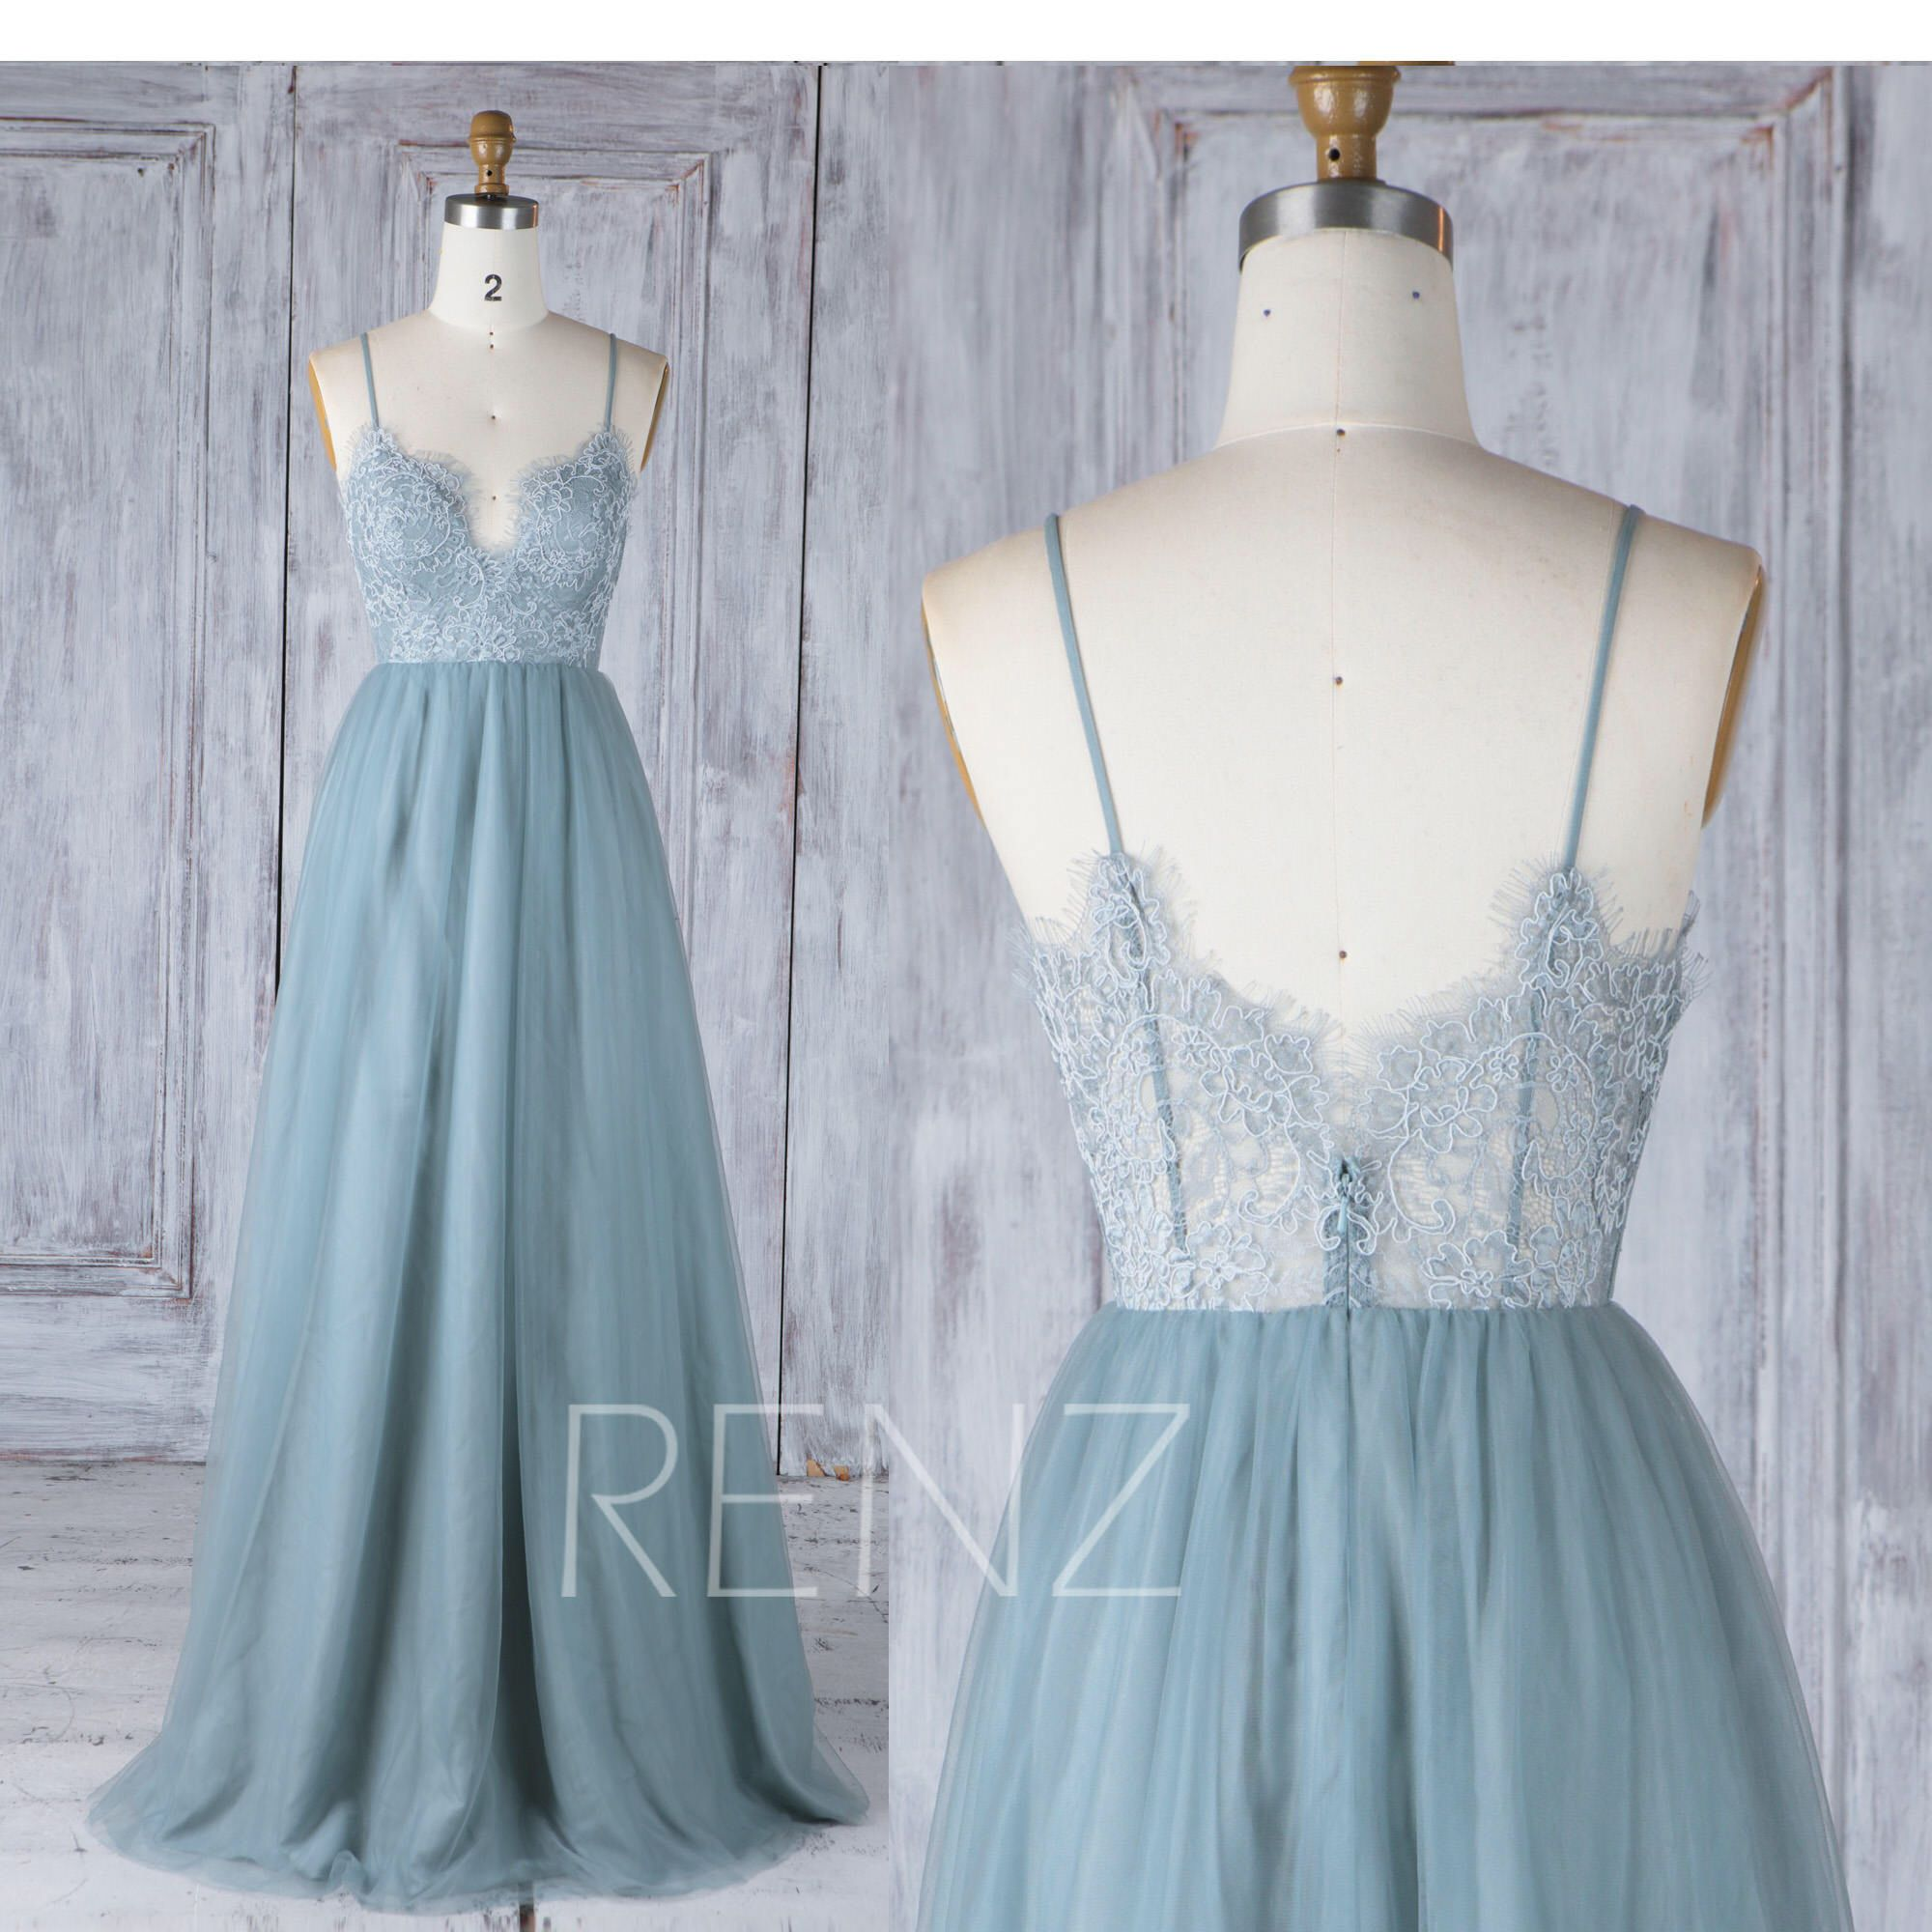 Bridesmaid dress dusty blue tulle wedding dressillusion lace prom